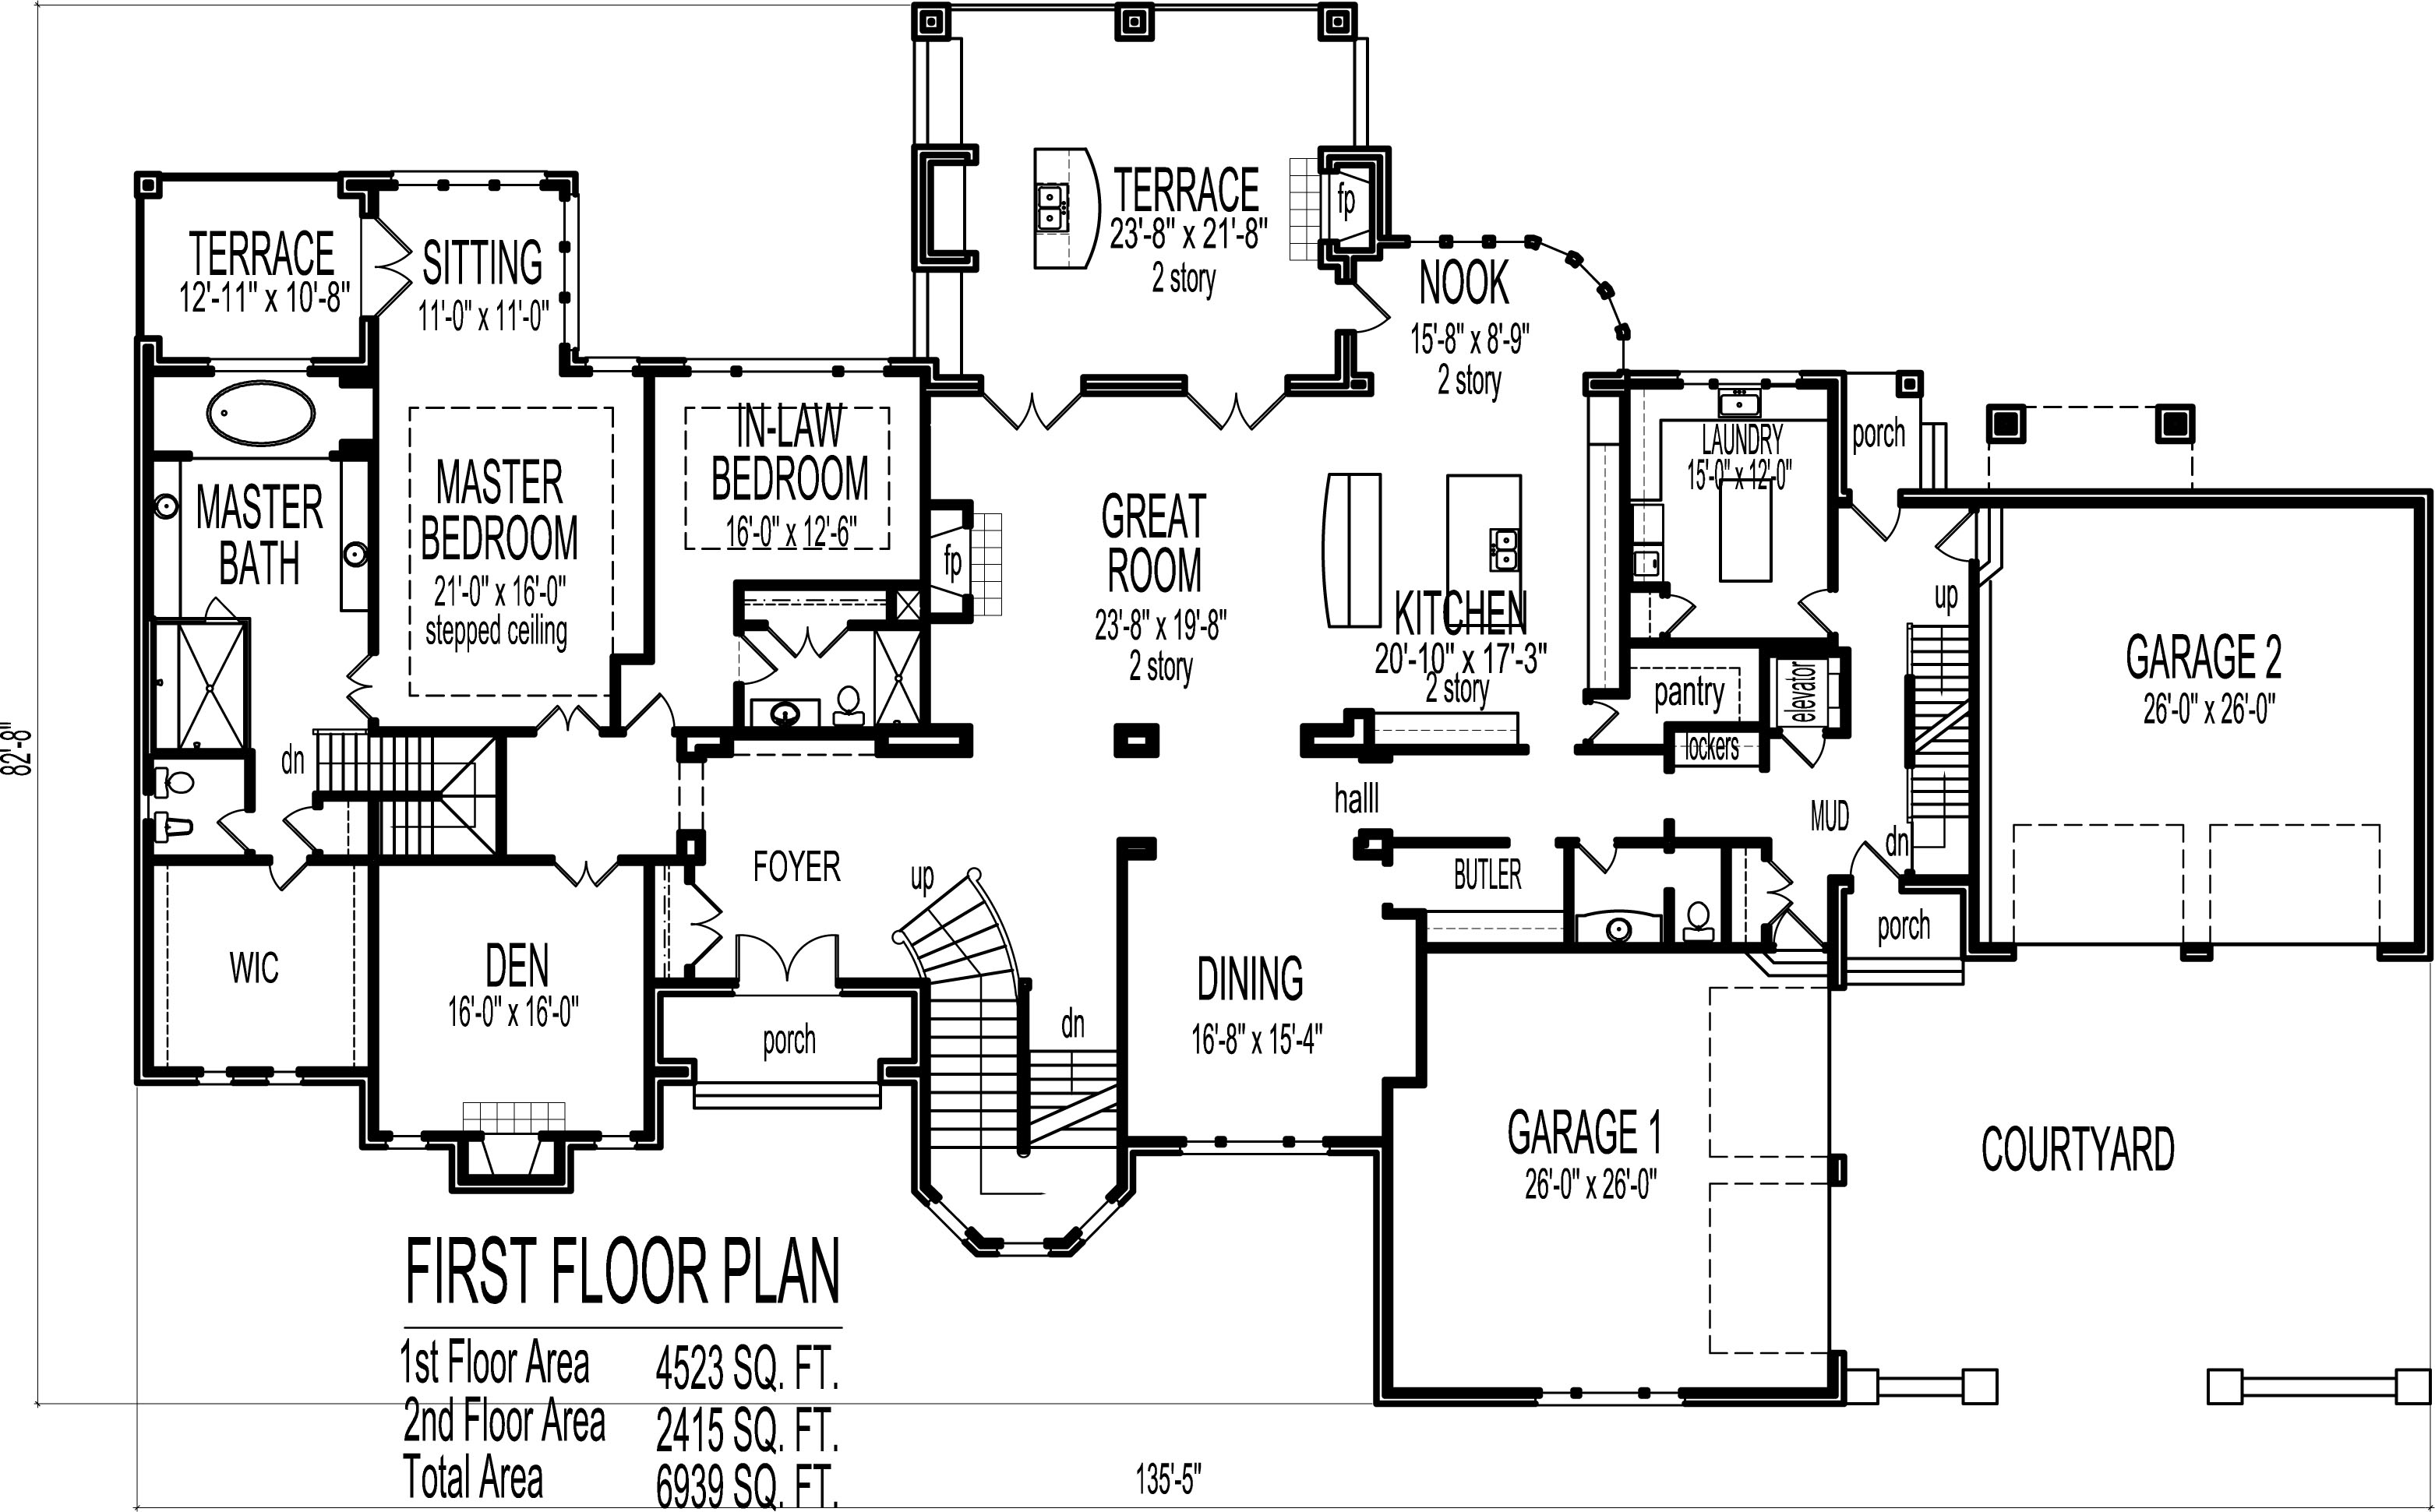 Mansion house floor plans blueprints 6 bedroom 2 story for 6 bed house plans